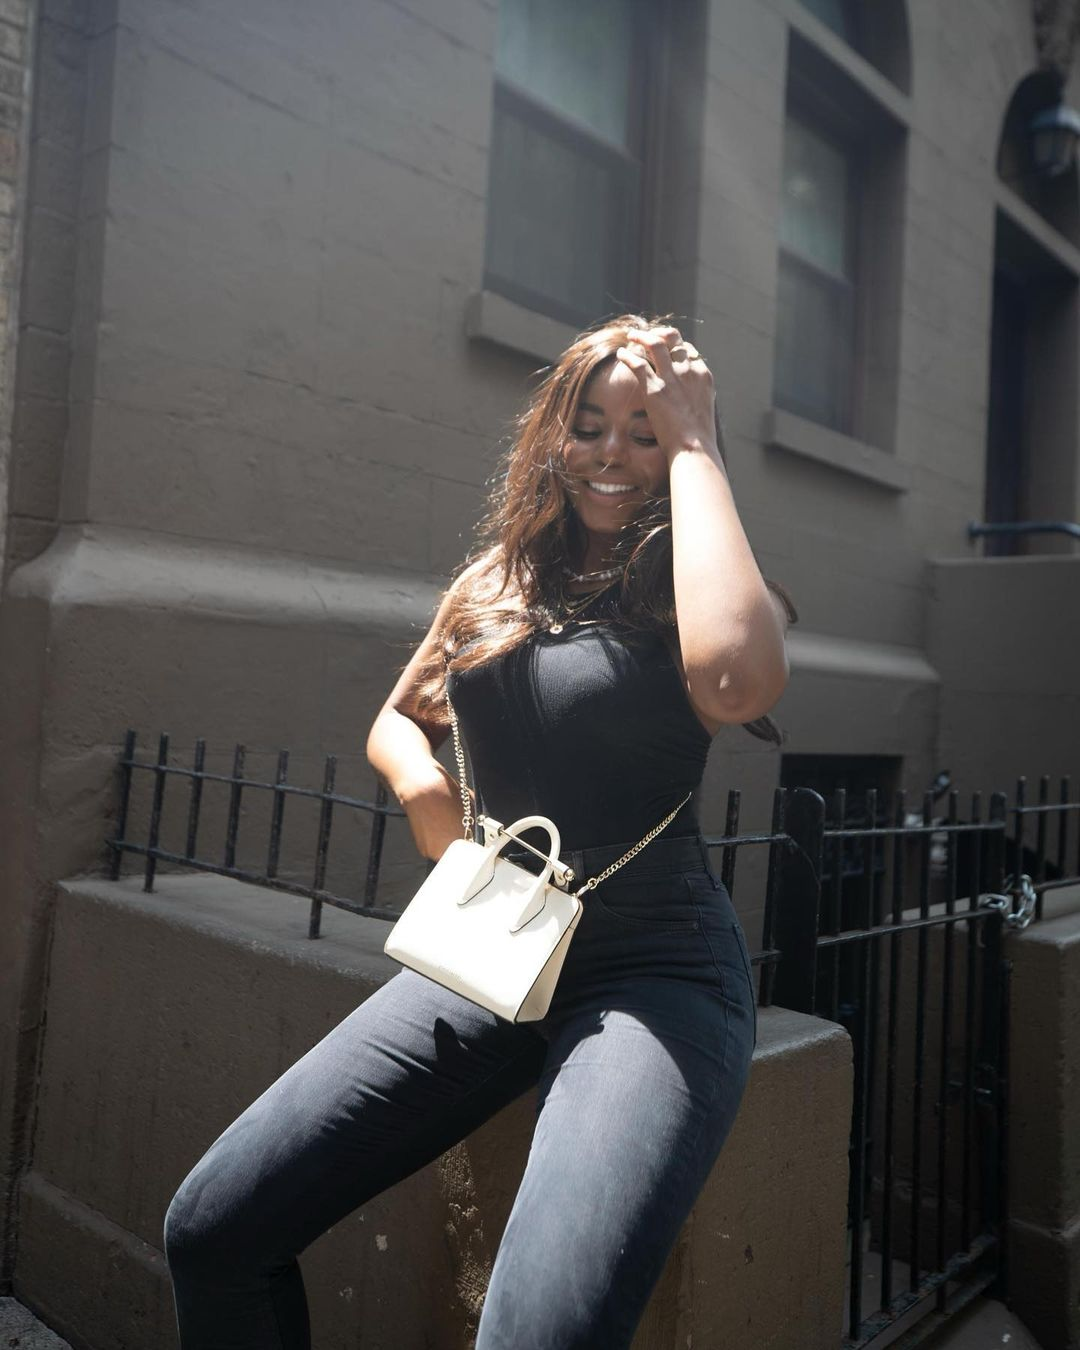 Model, Kaye Bassey, in a black sleeveless top, grey skinny jeans with a white tote bag - street style photography